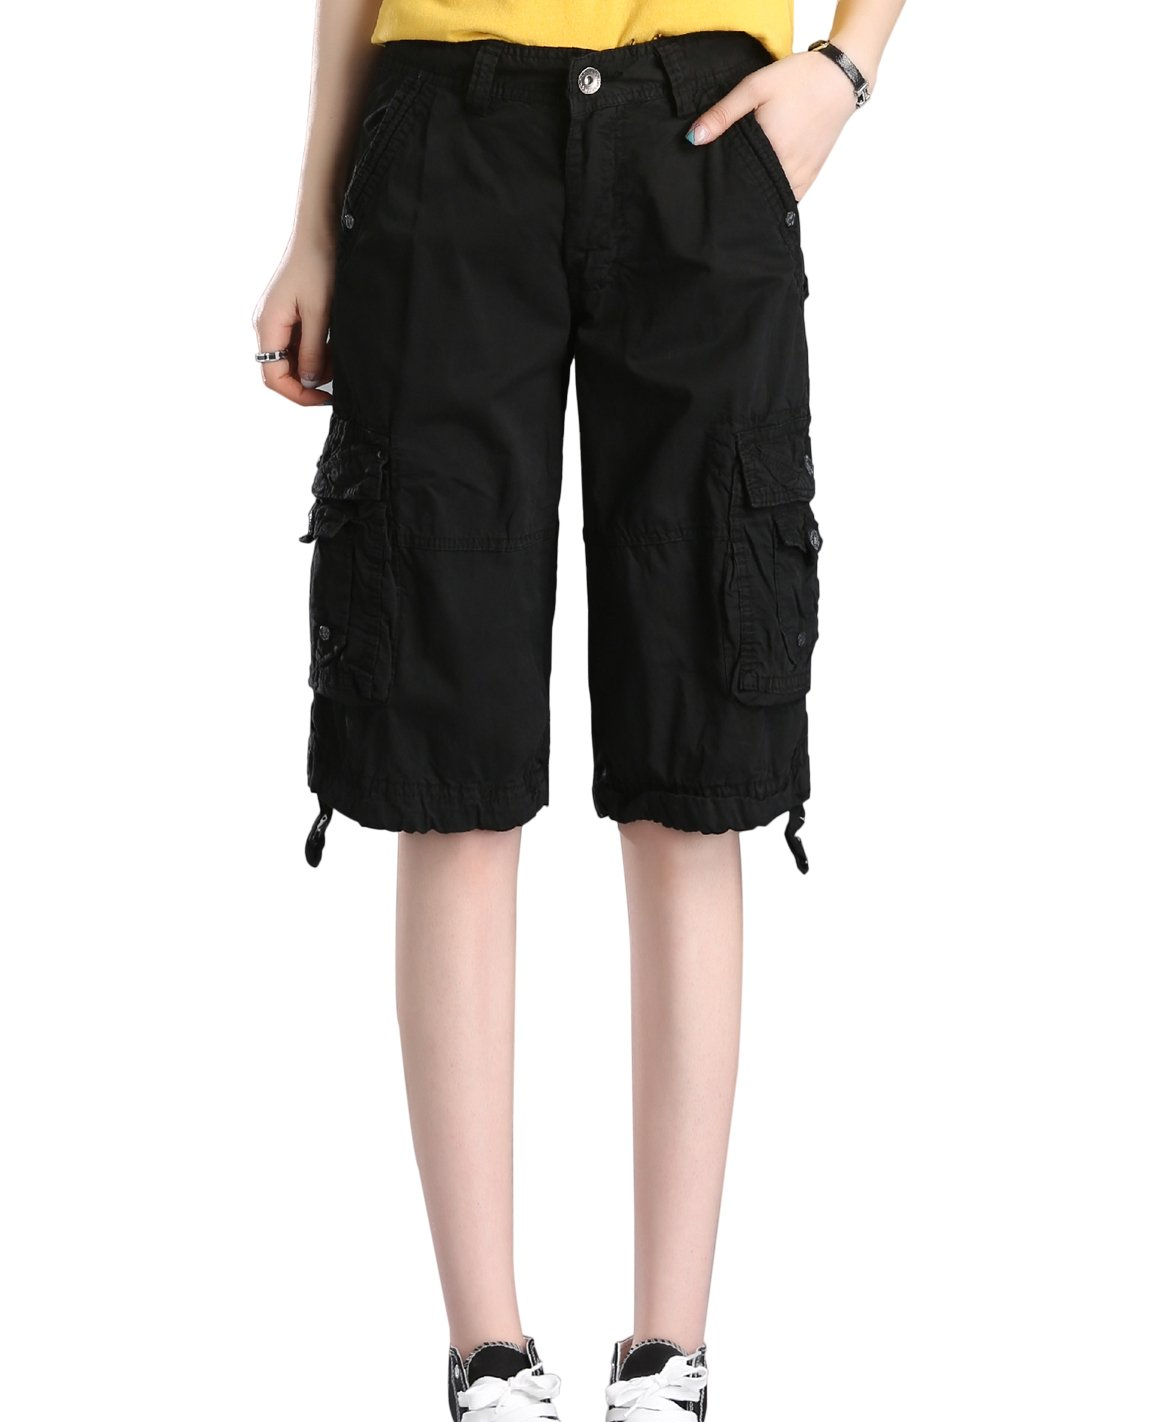 HOW'ON Women's Casual Loose Fit Twill Bermuda Cargo Shorts Multi Pocket Straight Shorts Black M